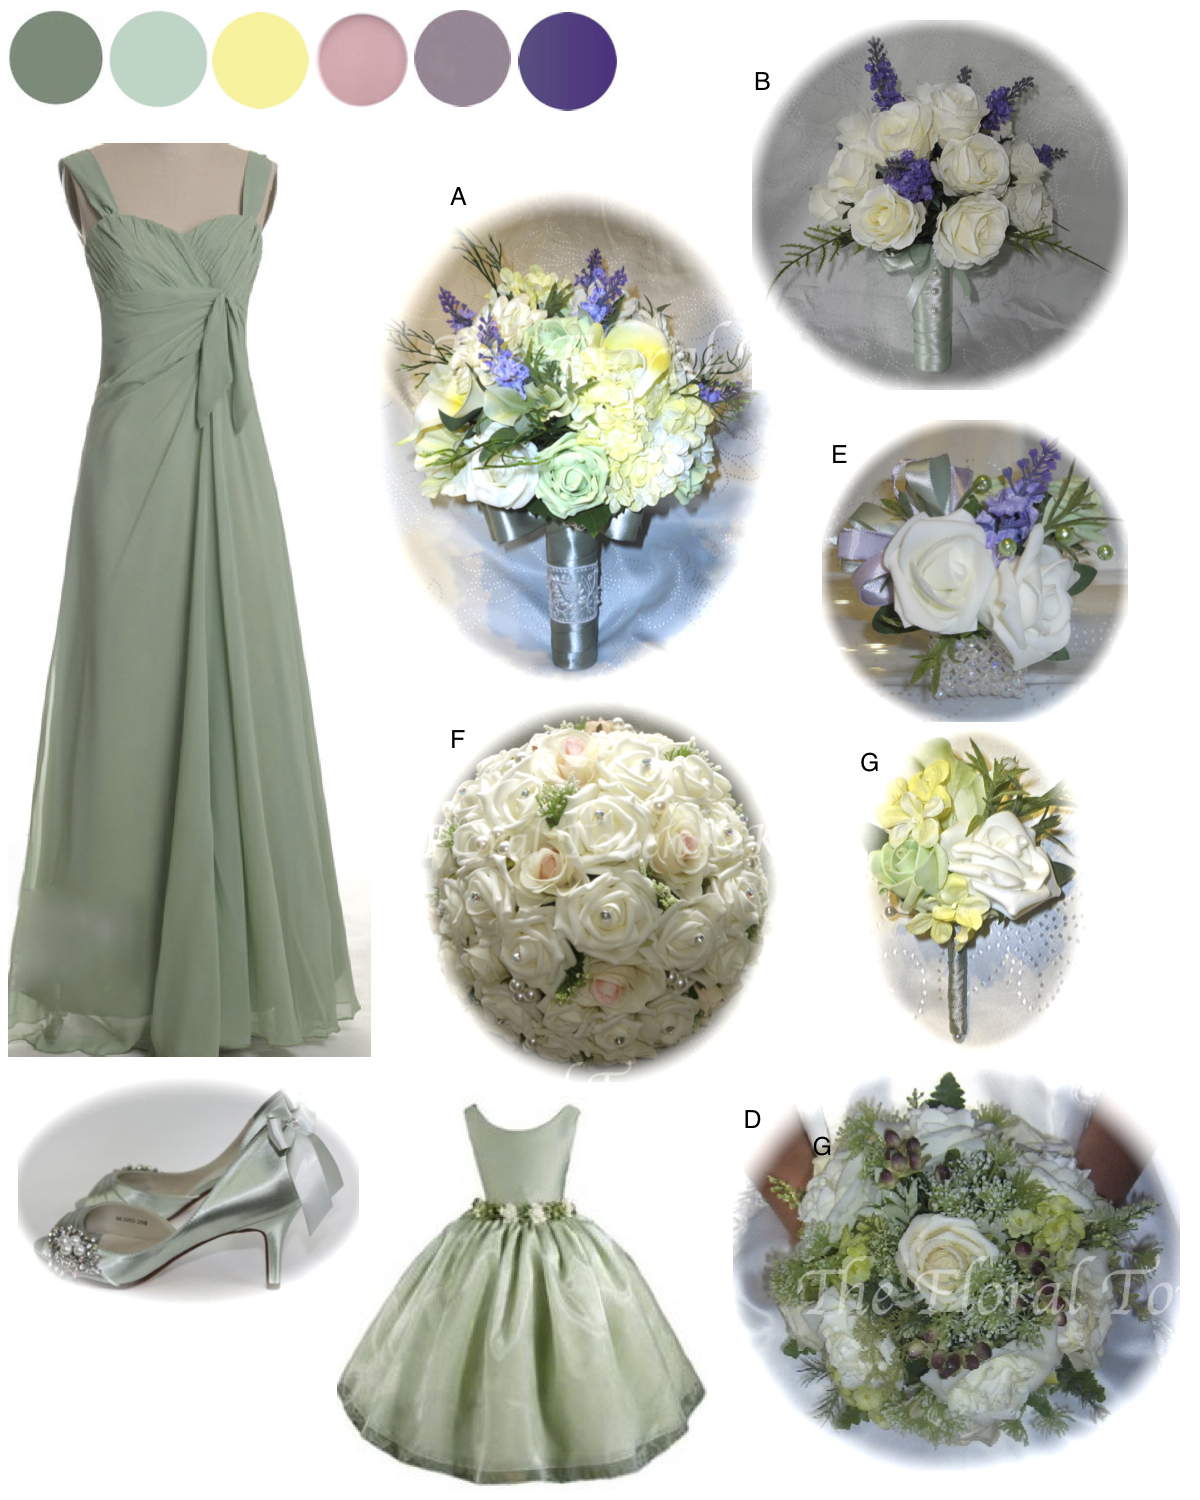 New seasons wedding colours the floral touch uk sage green bridesmaid dress ombrellifo Images